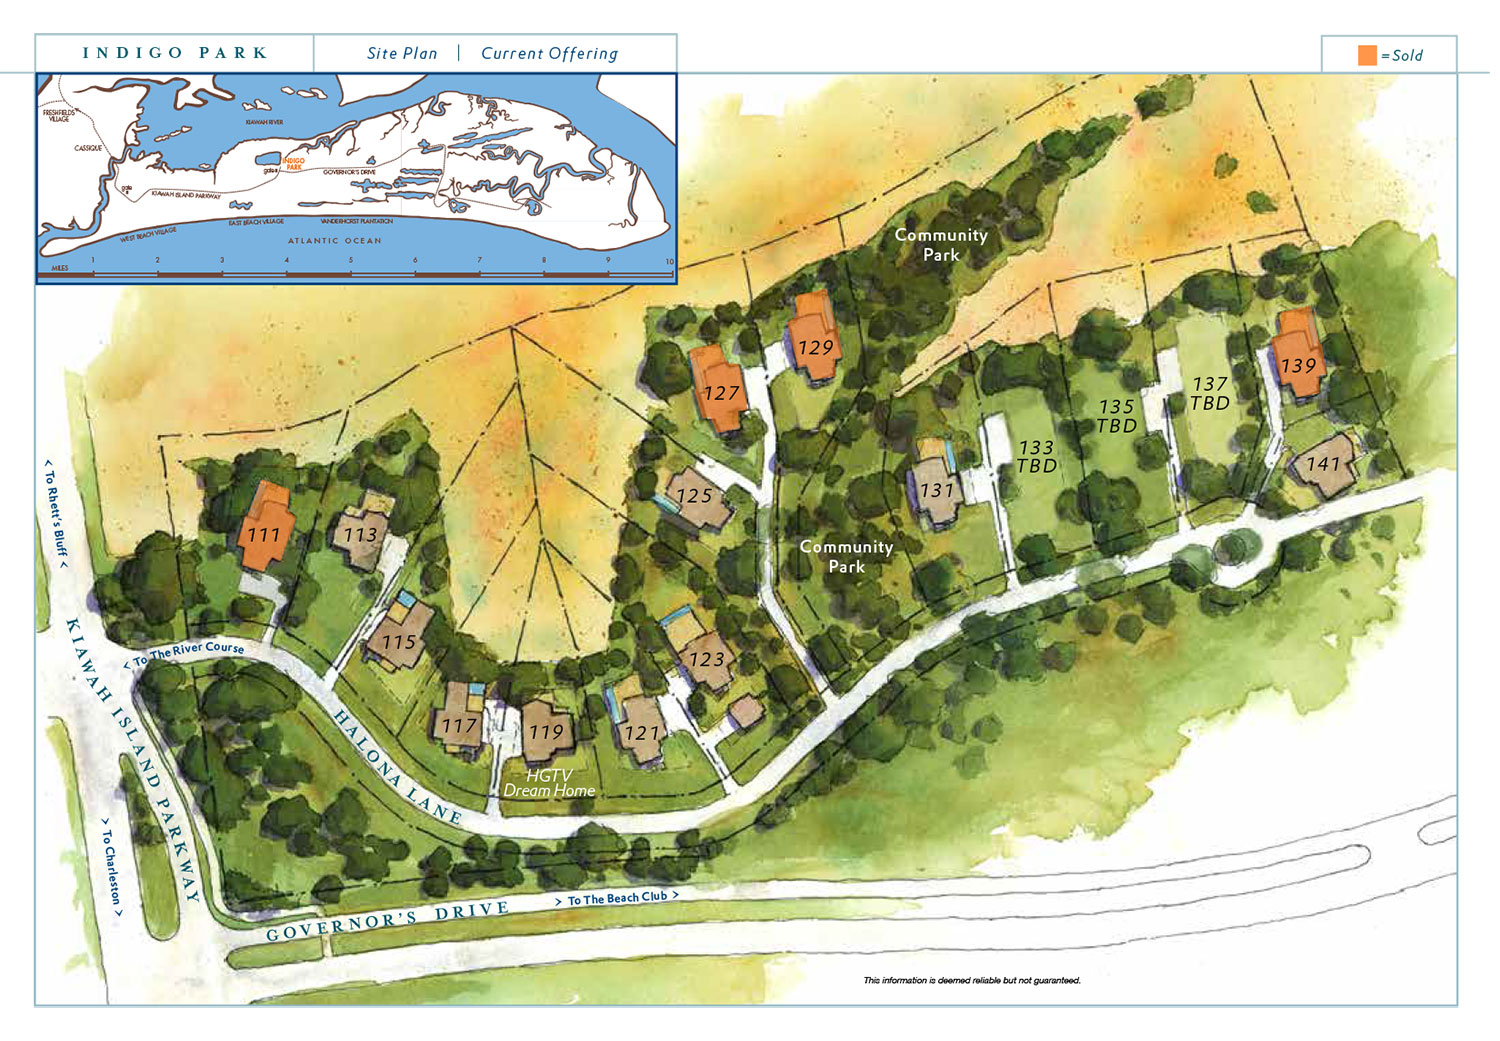 Indigo Park site plan on Kiawah Island, SC